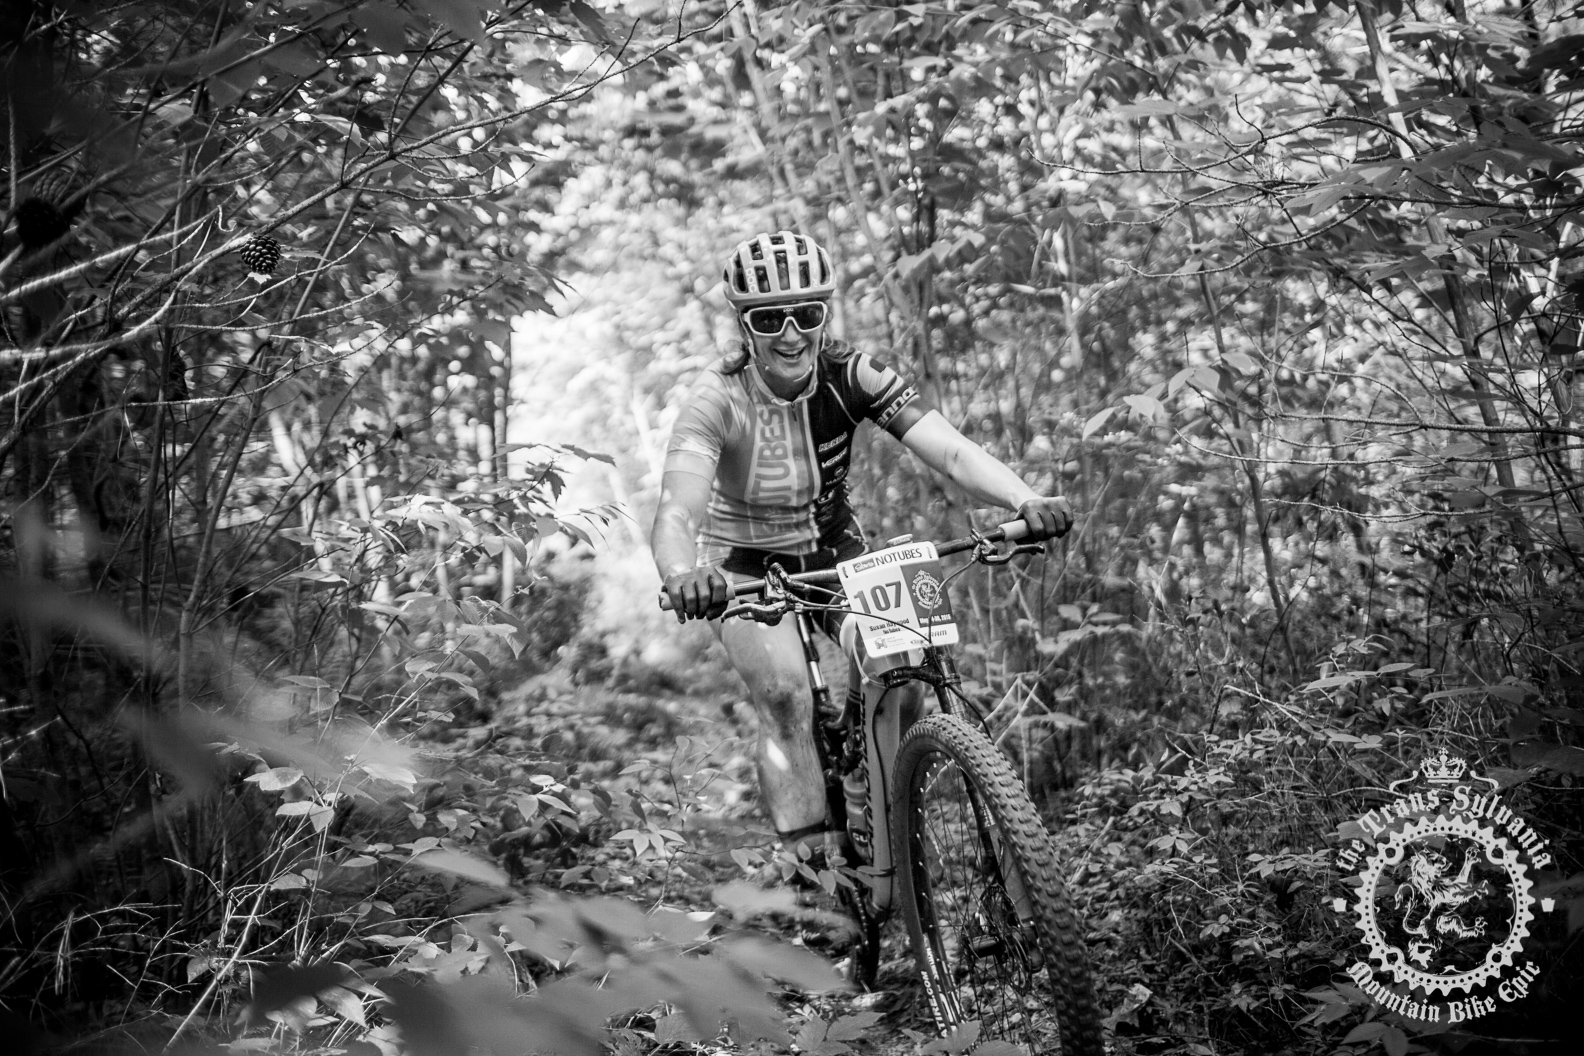 Sue Haywood (Stan's NoTubes Elite Women's Team) enjoys some singletrack at the NoTubes Trans-Sylvania Epic. Photo by the Trans-Sylvania Epic Media Team